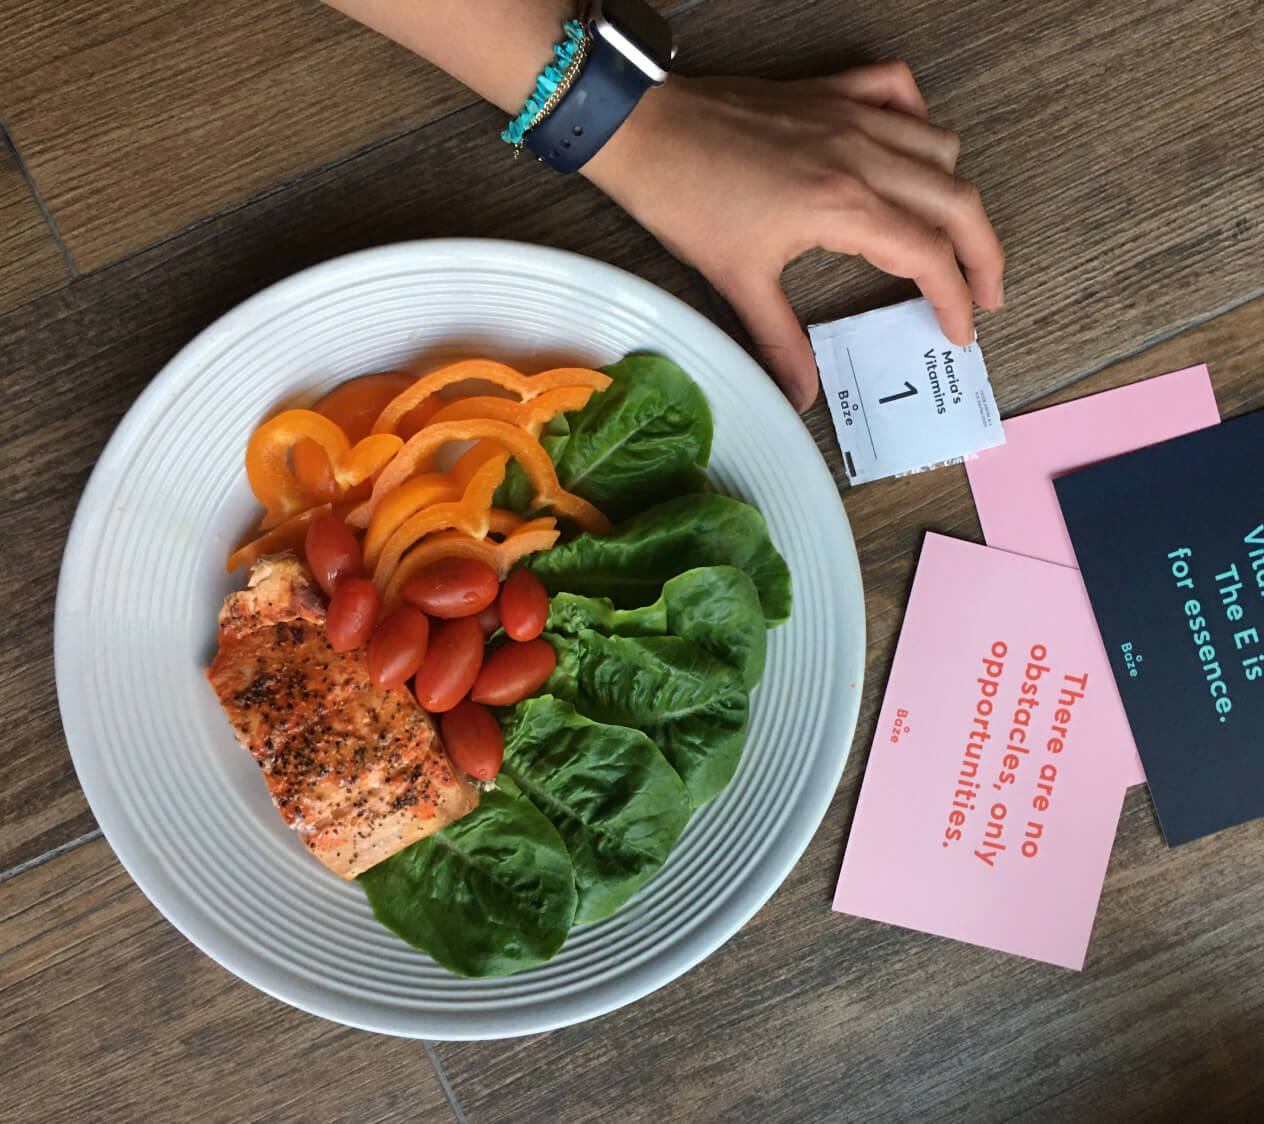 A female hand holding a daily supplement pack titled 'Maria's Vitamins' with a plate of colorful vegetables and salmon sitting in the background